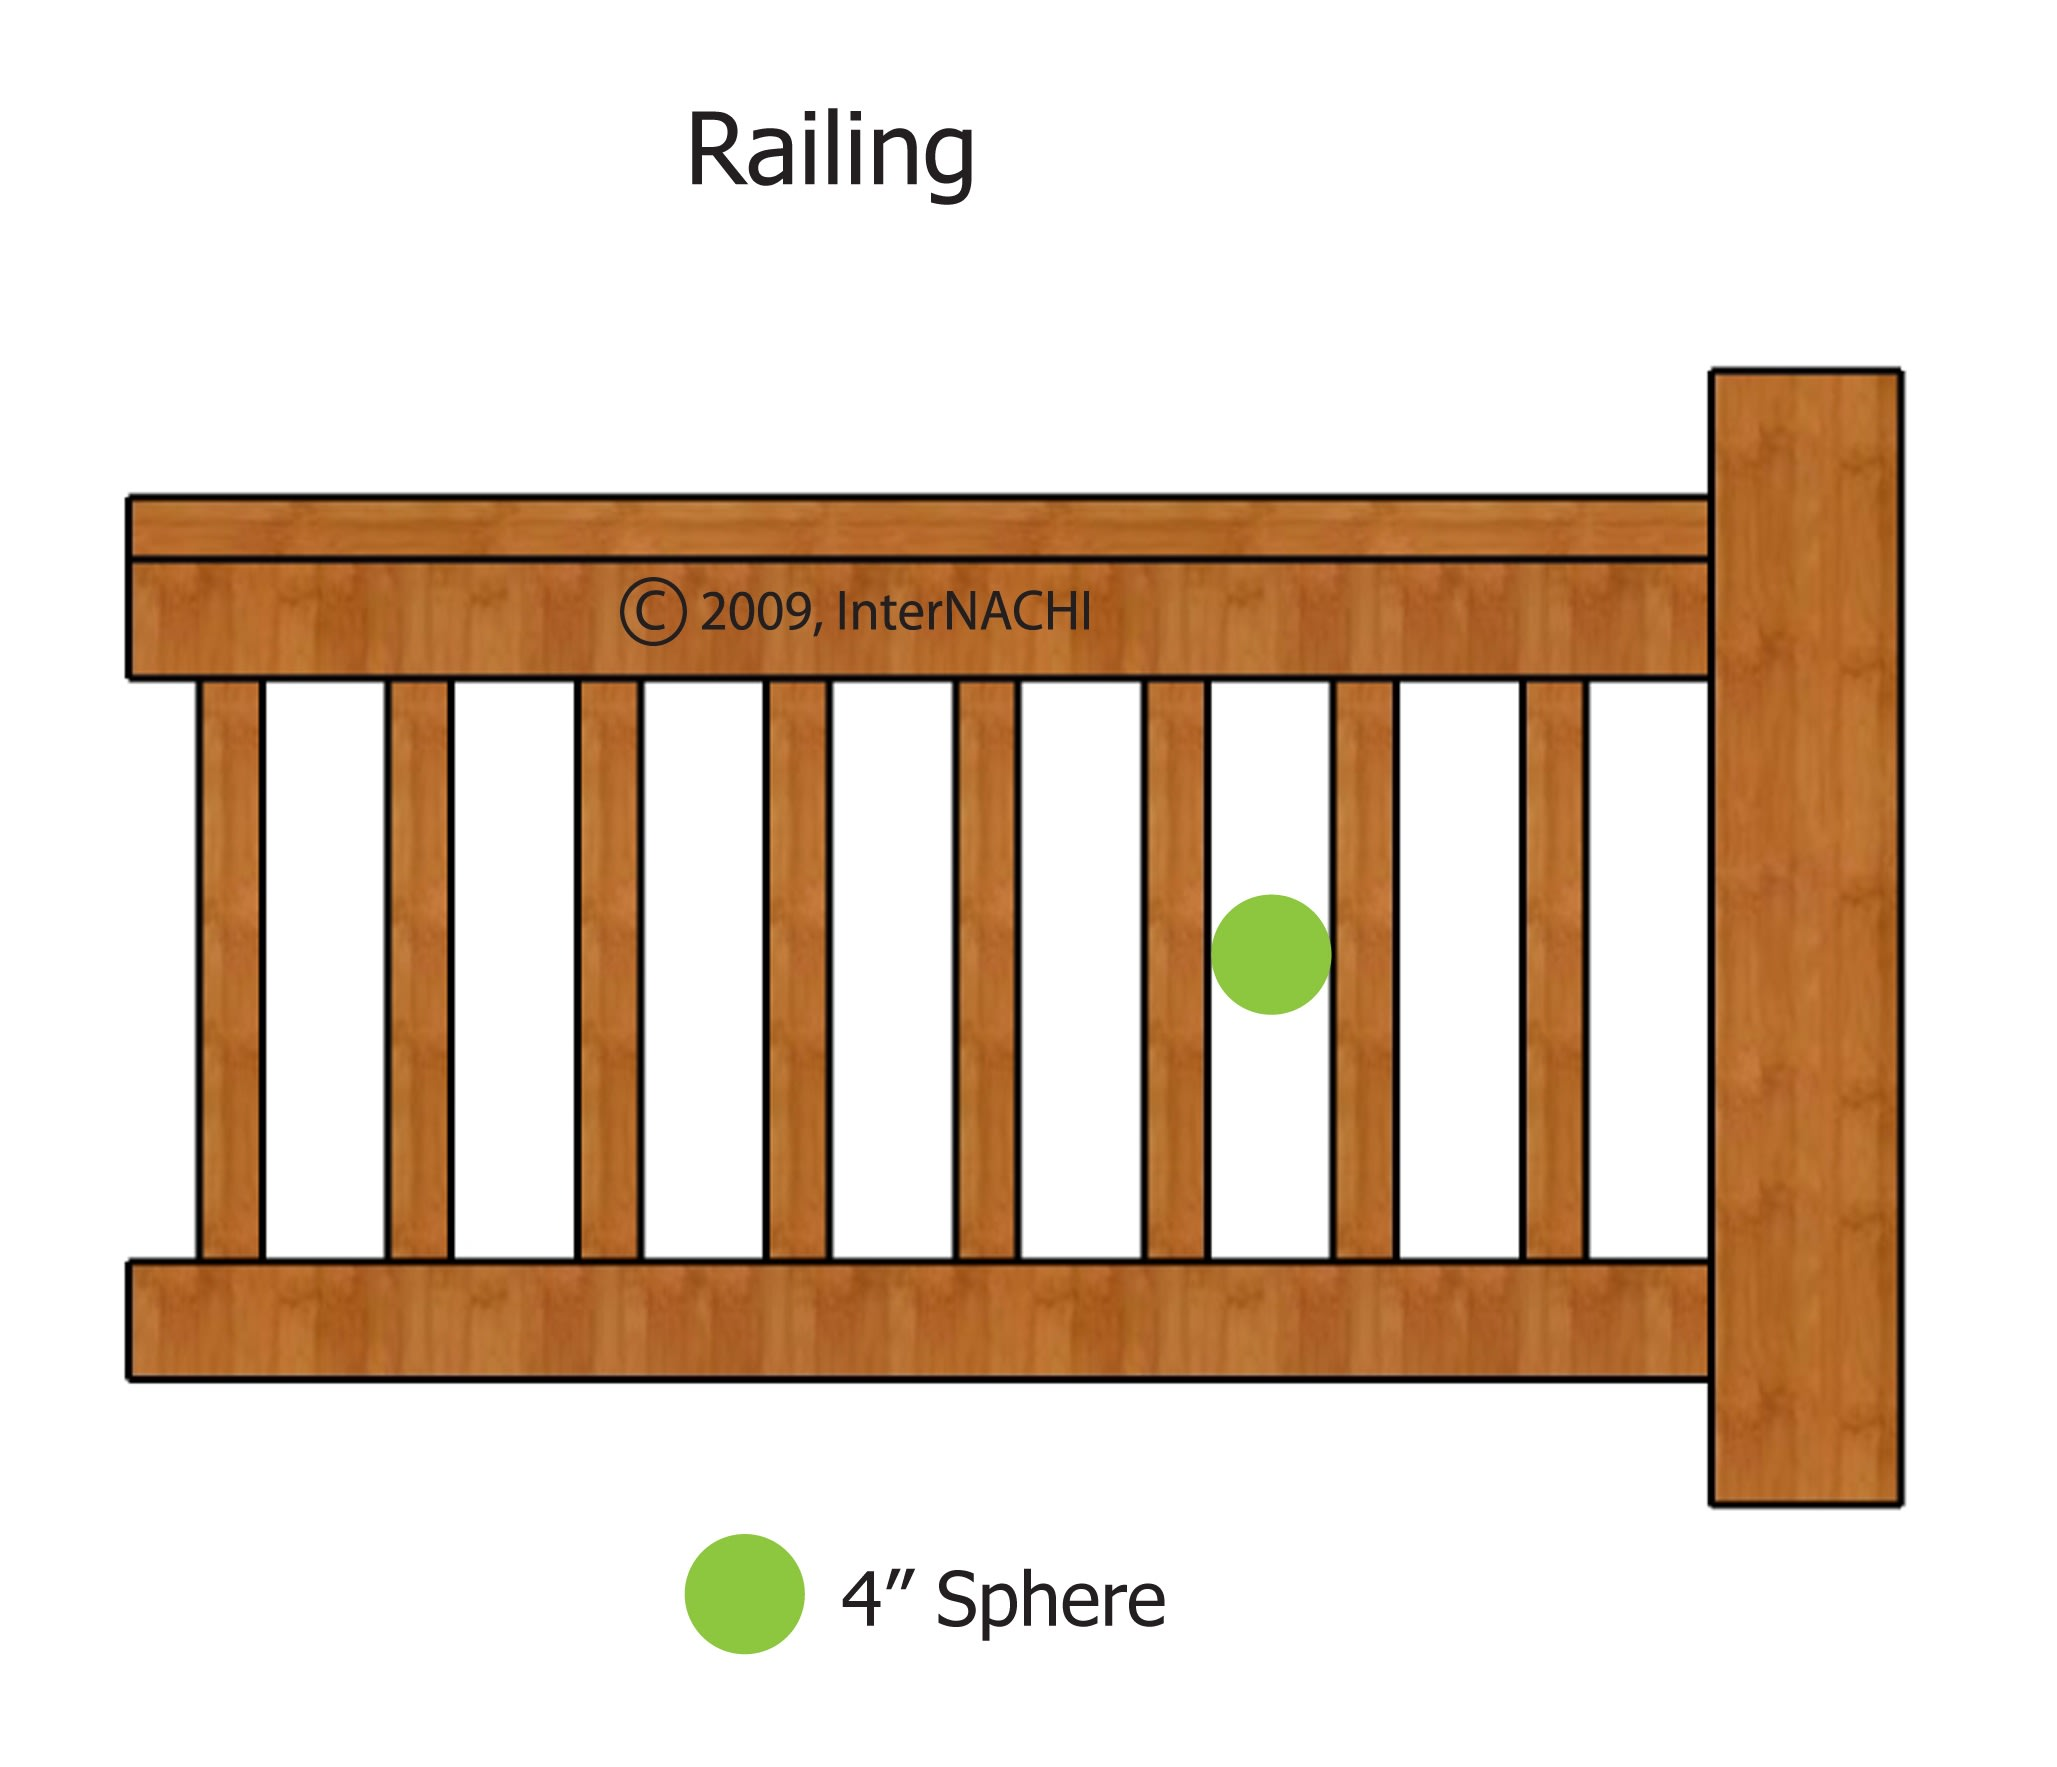 Guards must stop smaller occupants, such as children, from falling through them. A guard should have supports, spindles, intermediate rails, or some type of ornamental pattern so that a 4-inch (102 mm) sphere cannot pass through it.